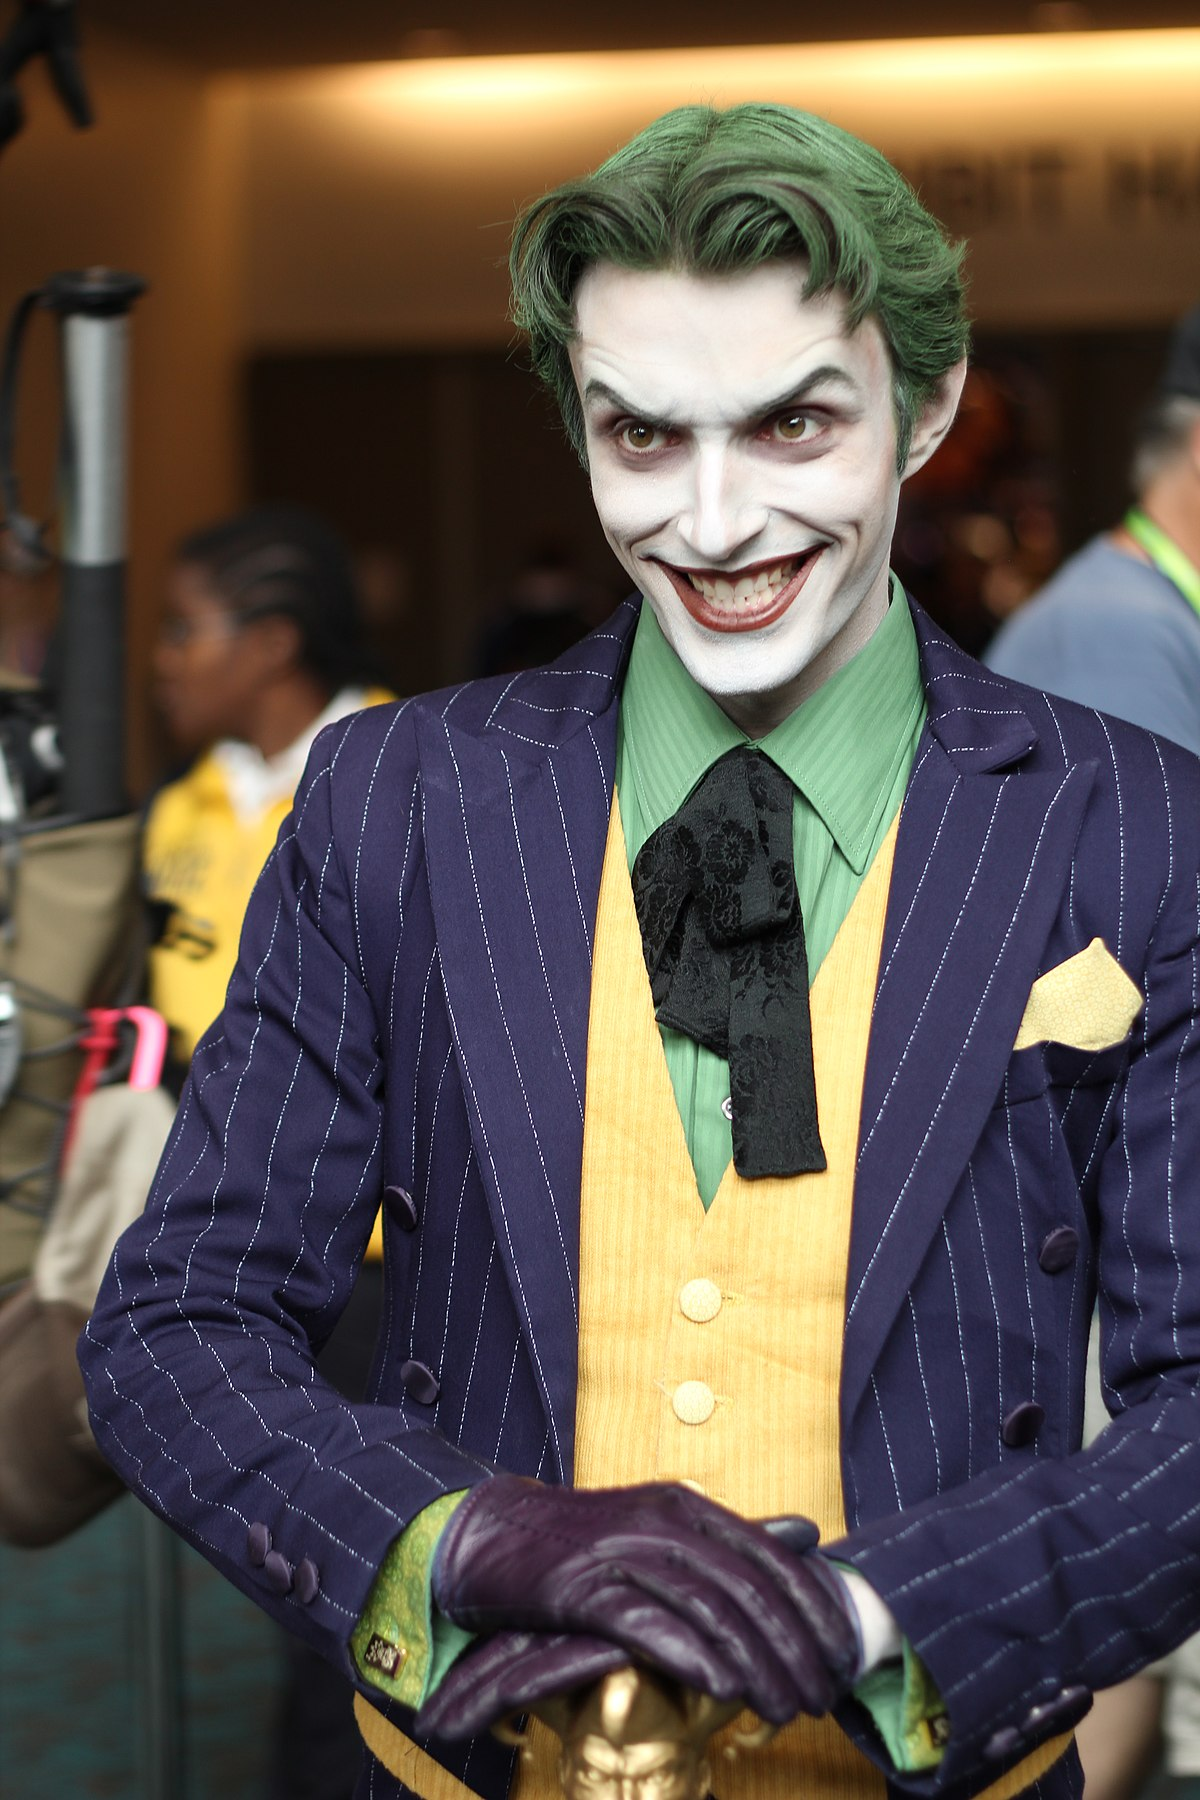 Kevin Michael Richardson Joker Joker (Batman) - Wikip...